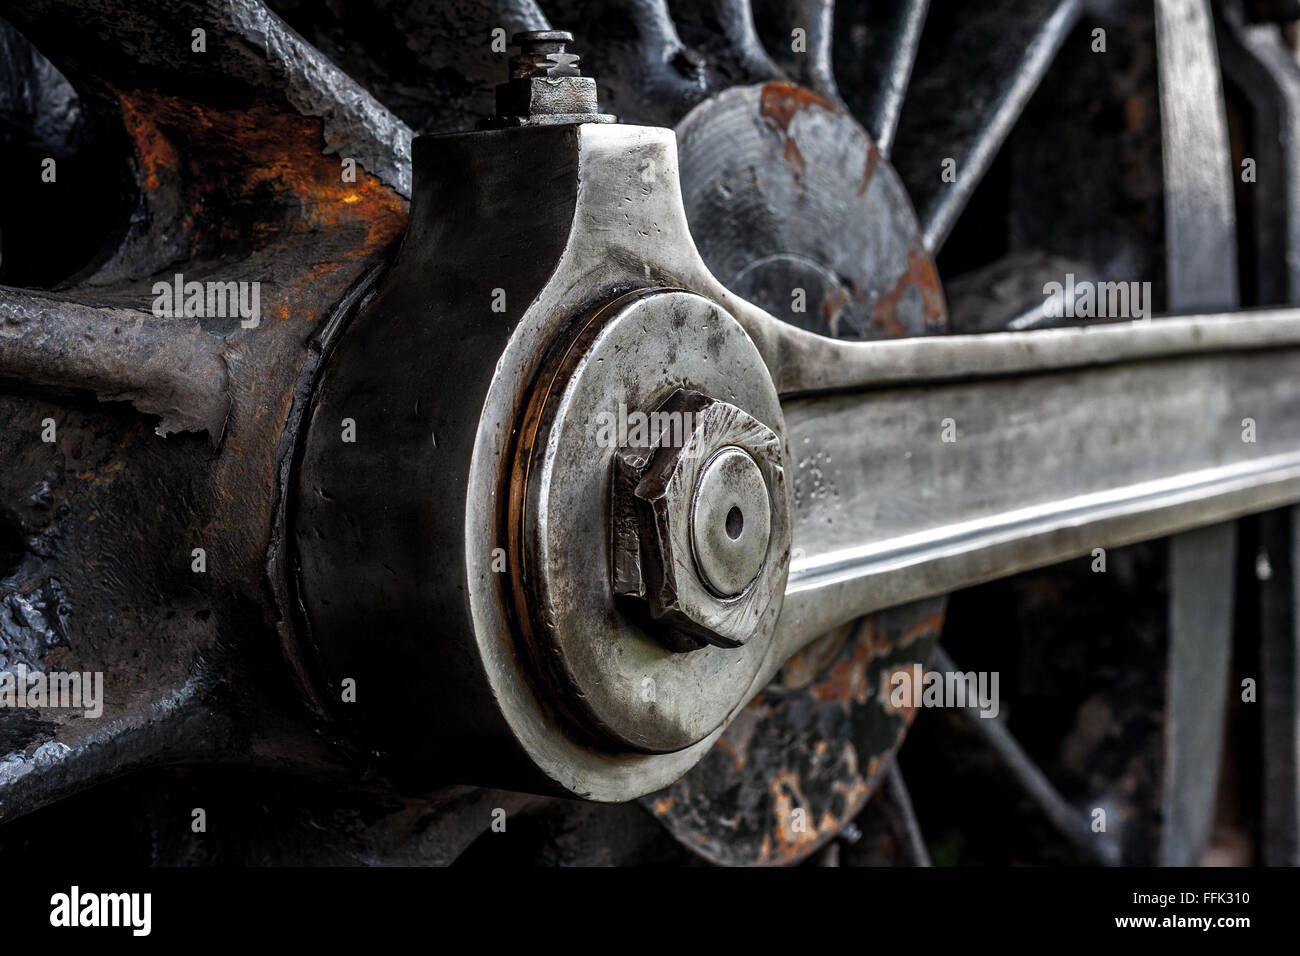 A detailed photograph showing close up view of vintage locomotive drive wheels and drive shafts - Stock Image